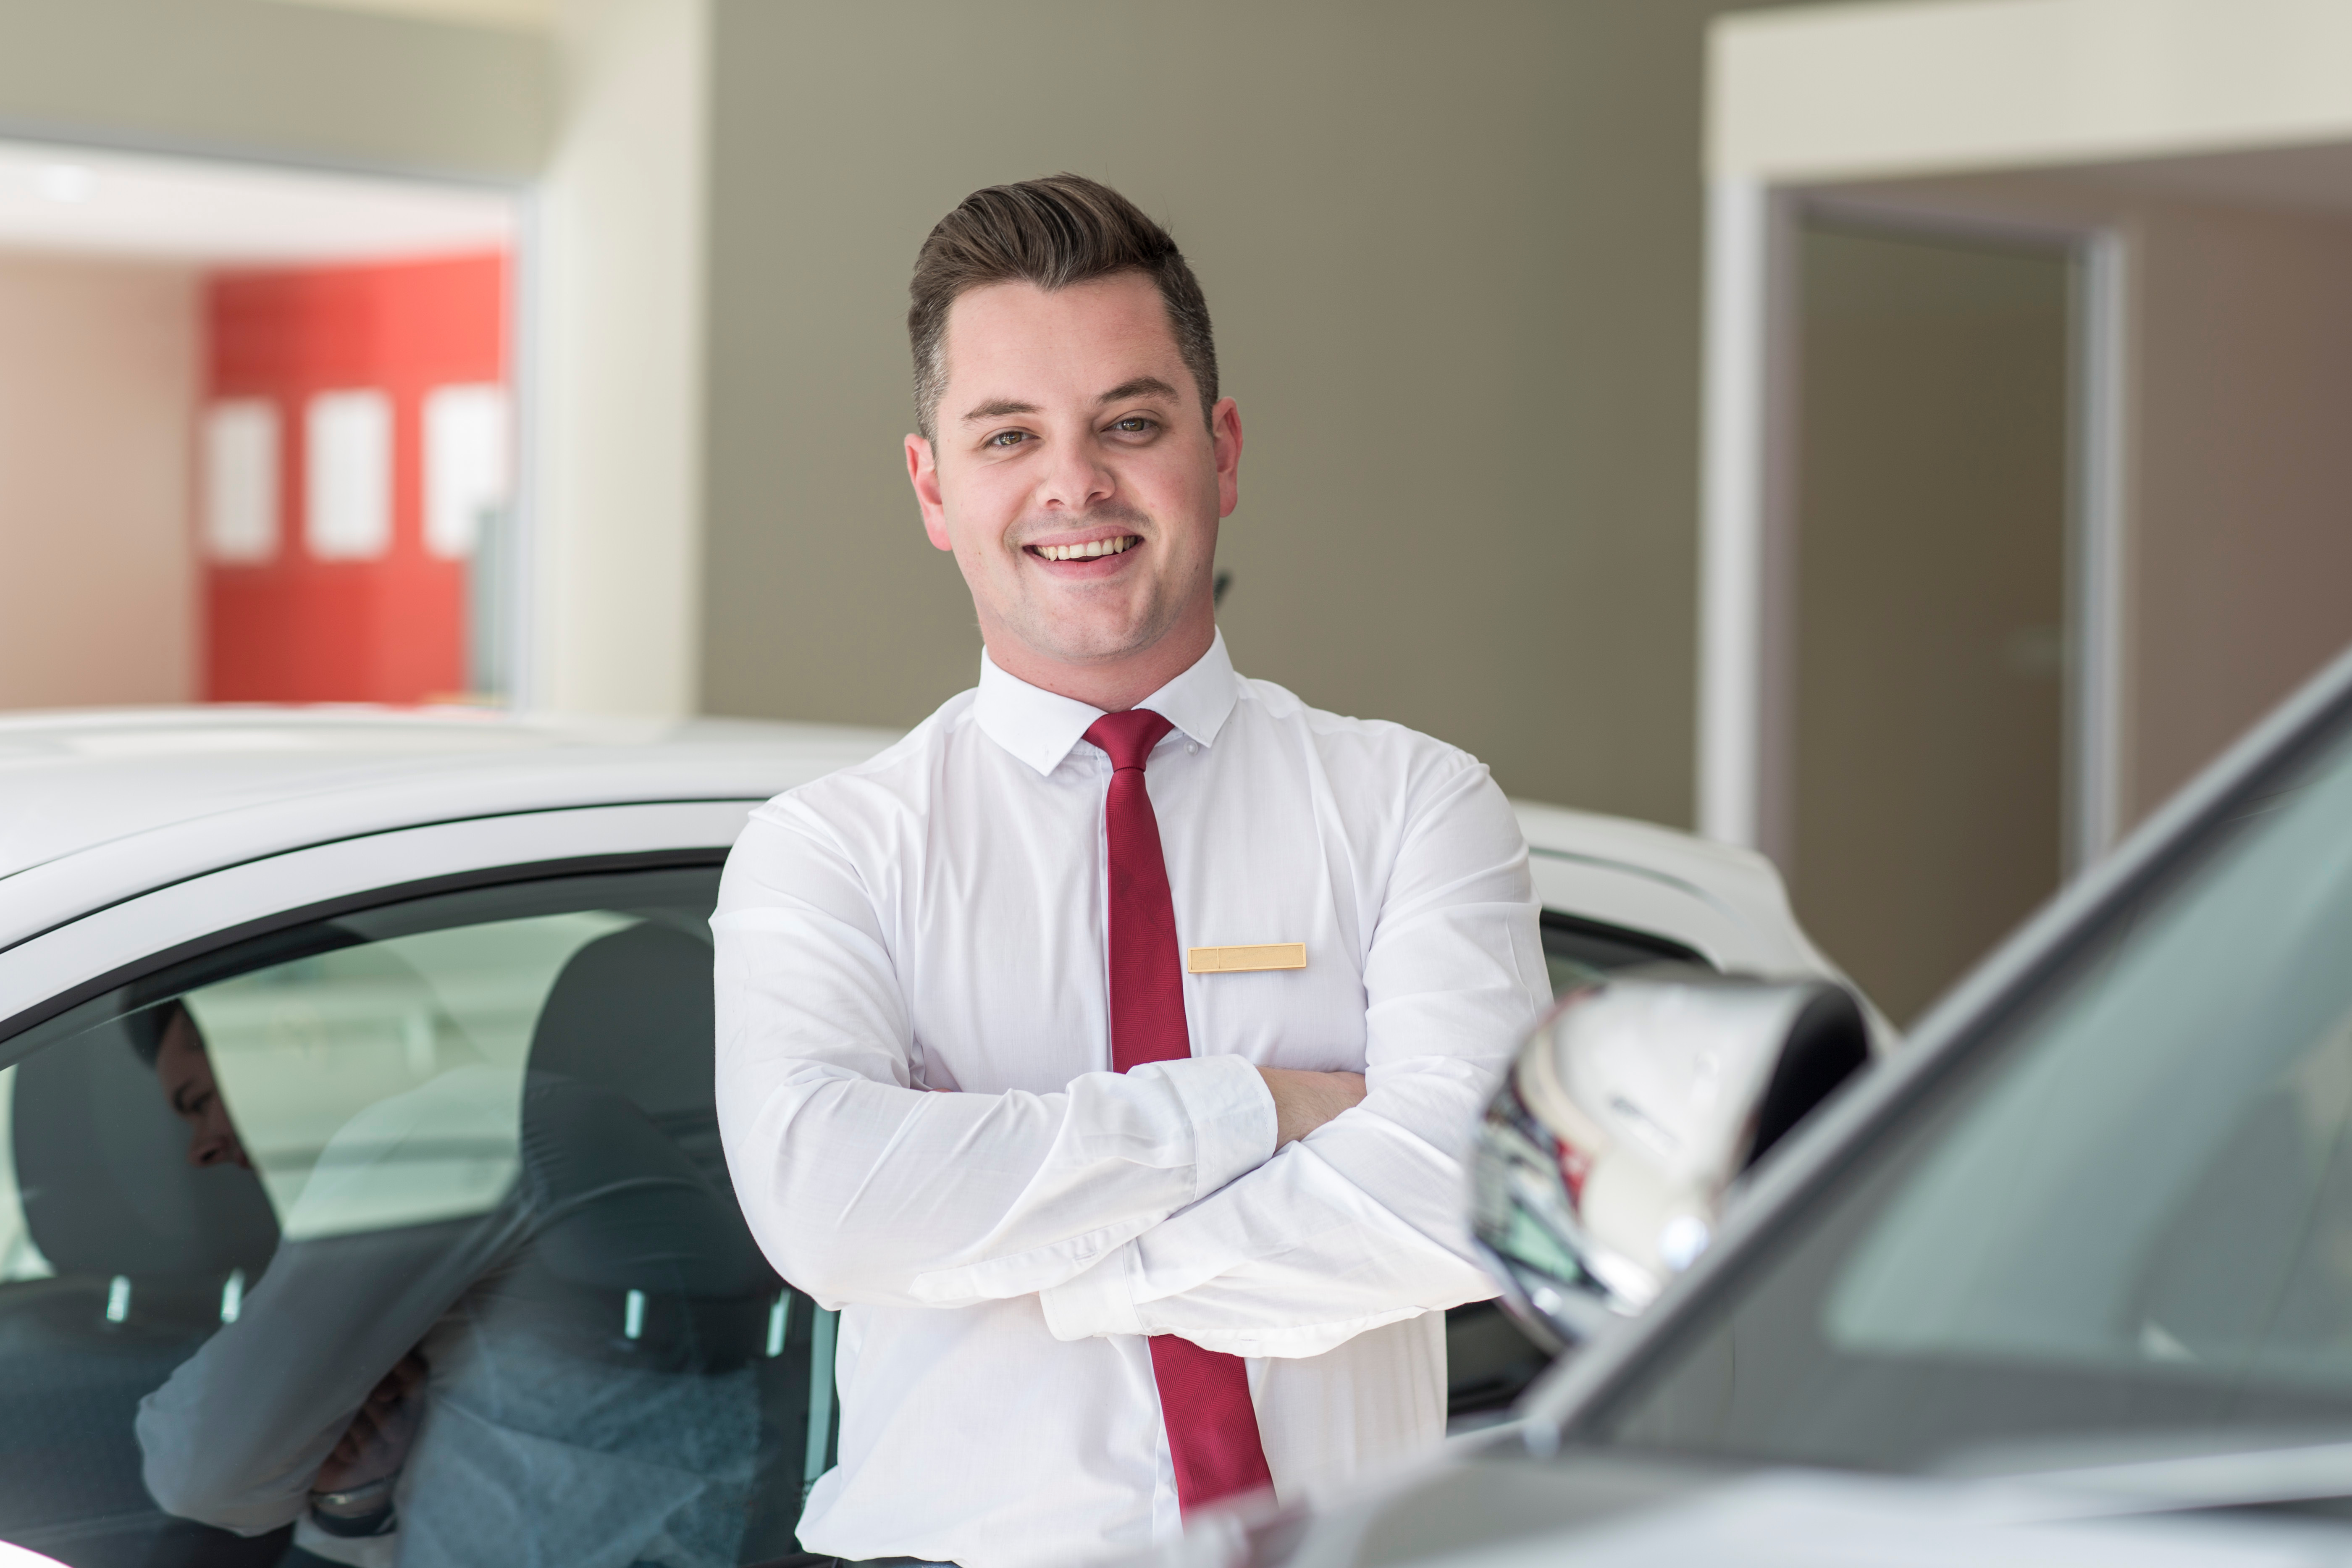 Our used-car specialist Alfie answers your questions